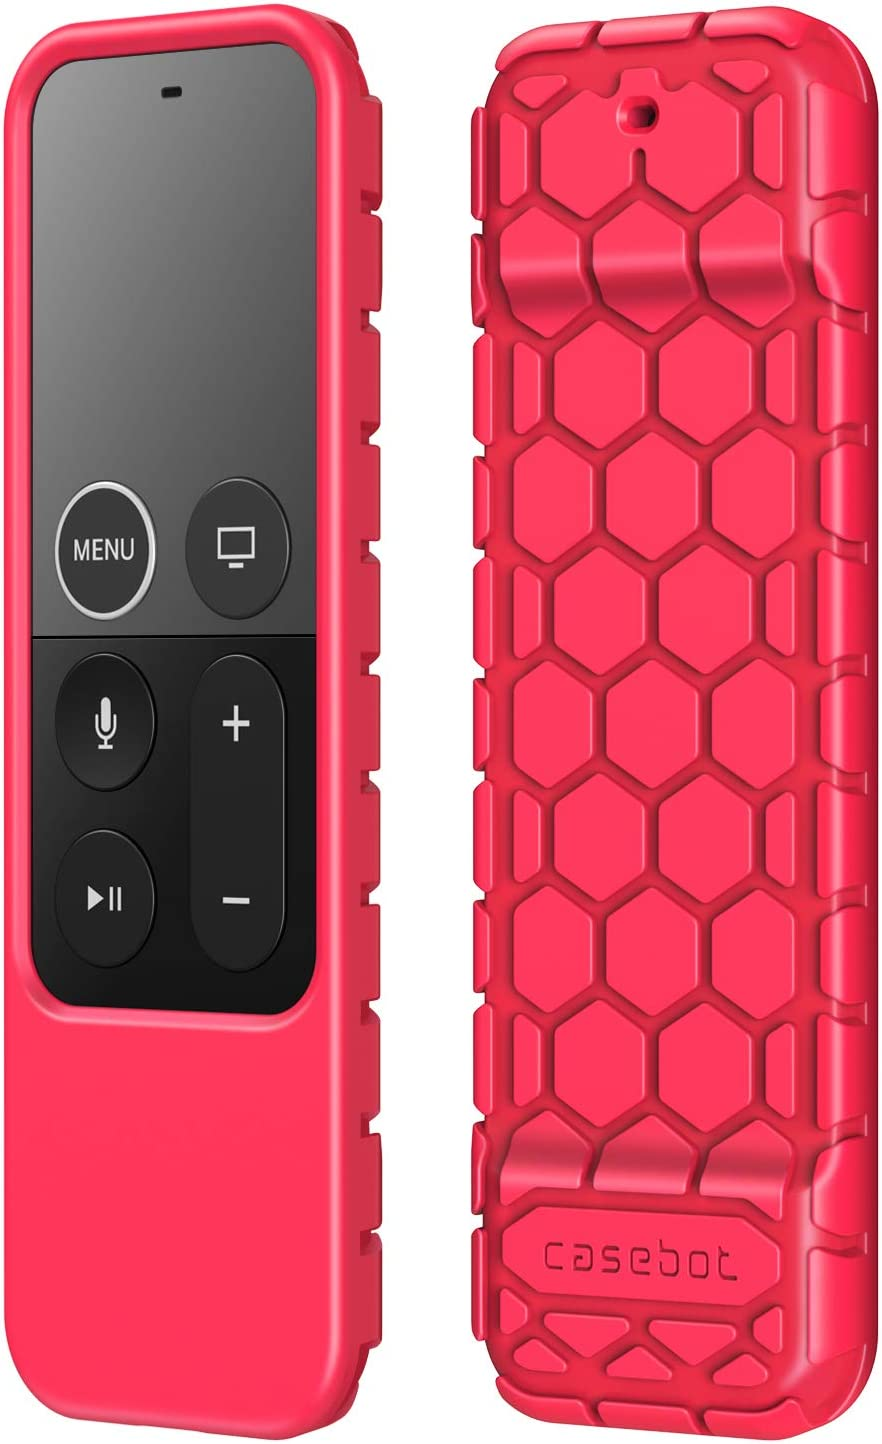 Fintie Protective Case for Apple TV 4K 5th, 4th Gen Remote - CaseBot (Honey Comb Series) Lightweight (Anti Slip) Shock Proof Silicone Cover for Apple TV Siri Remote Controller, Magenta